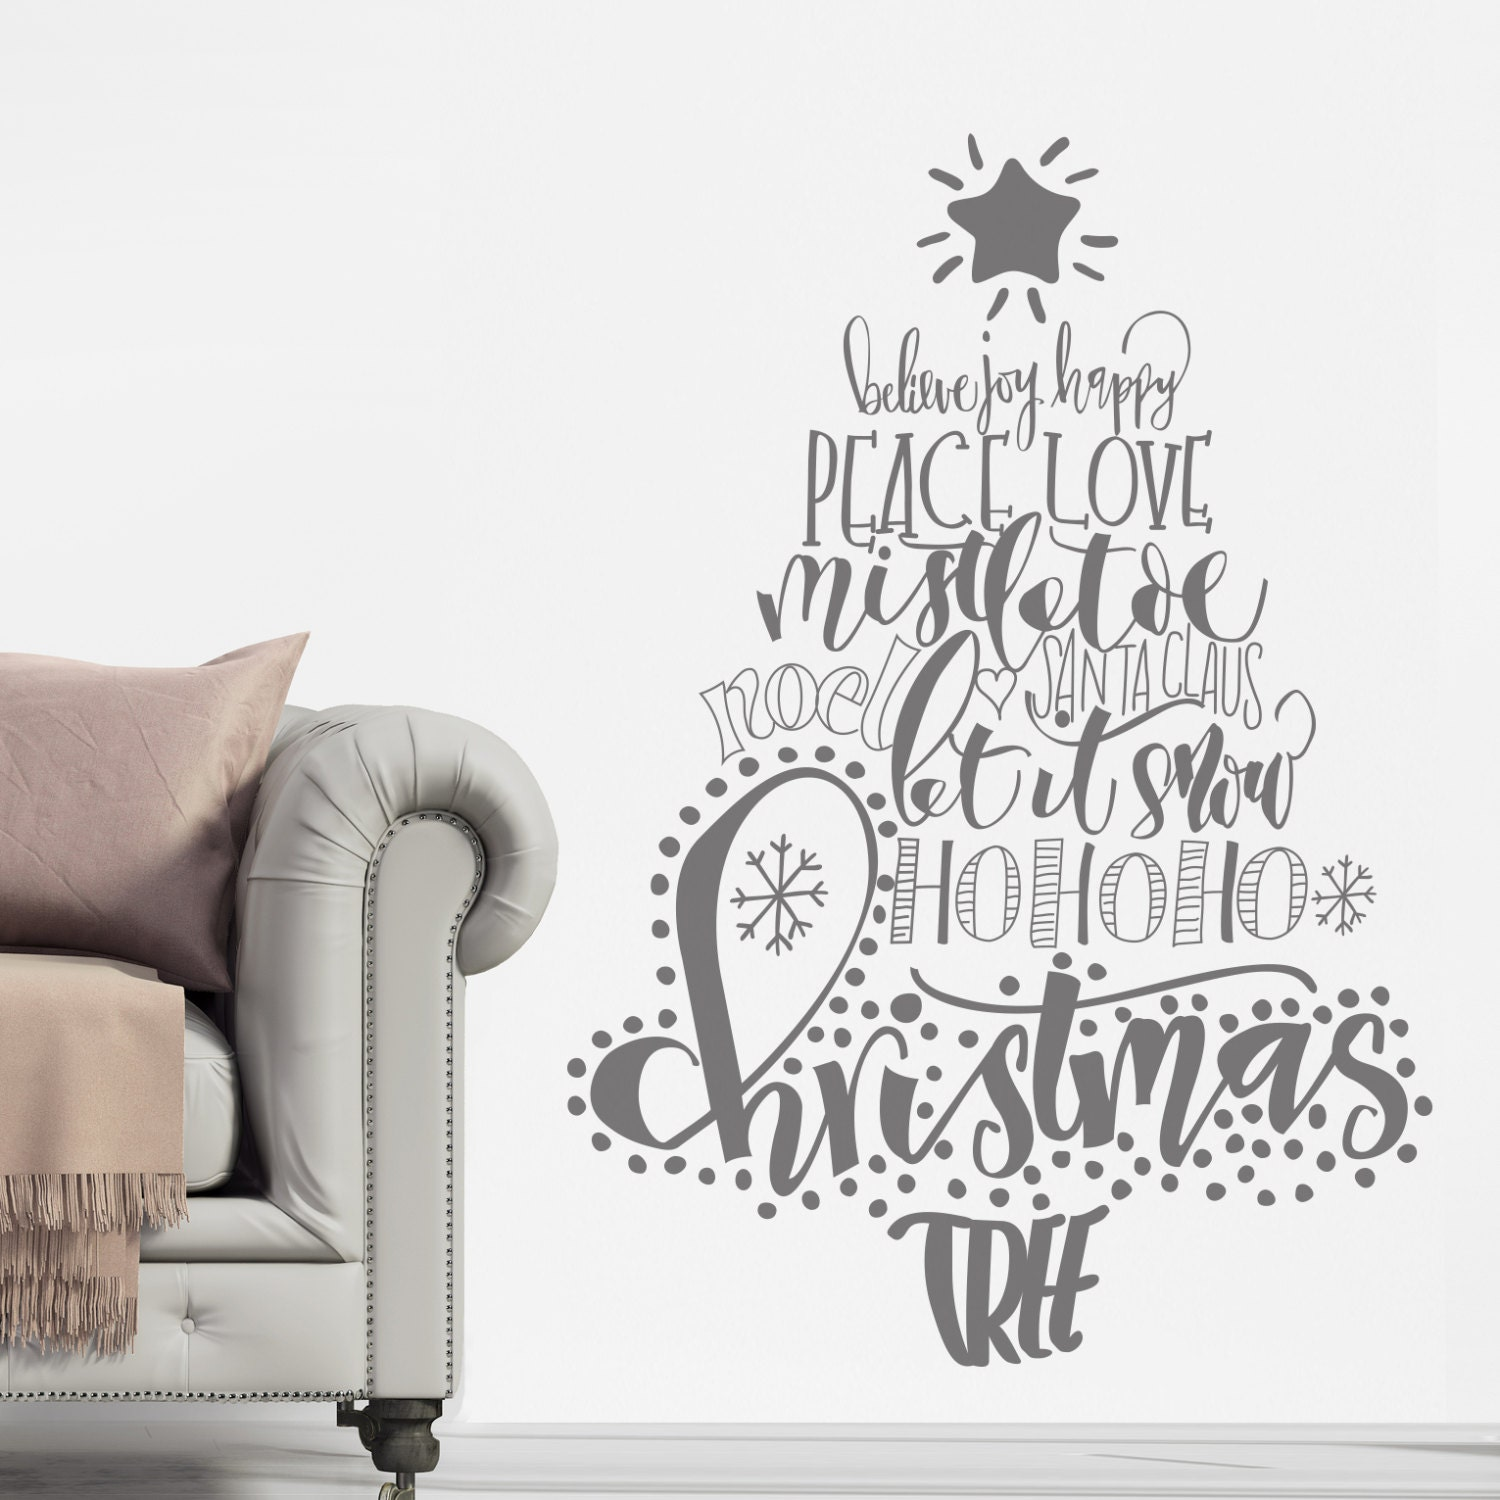 Calligraphy Christmas Tree DecalWall StickersChristmas Christmas Tree Wall StickerCalligraphyFestive DecalHome DecorAlternative Tree